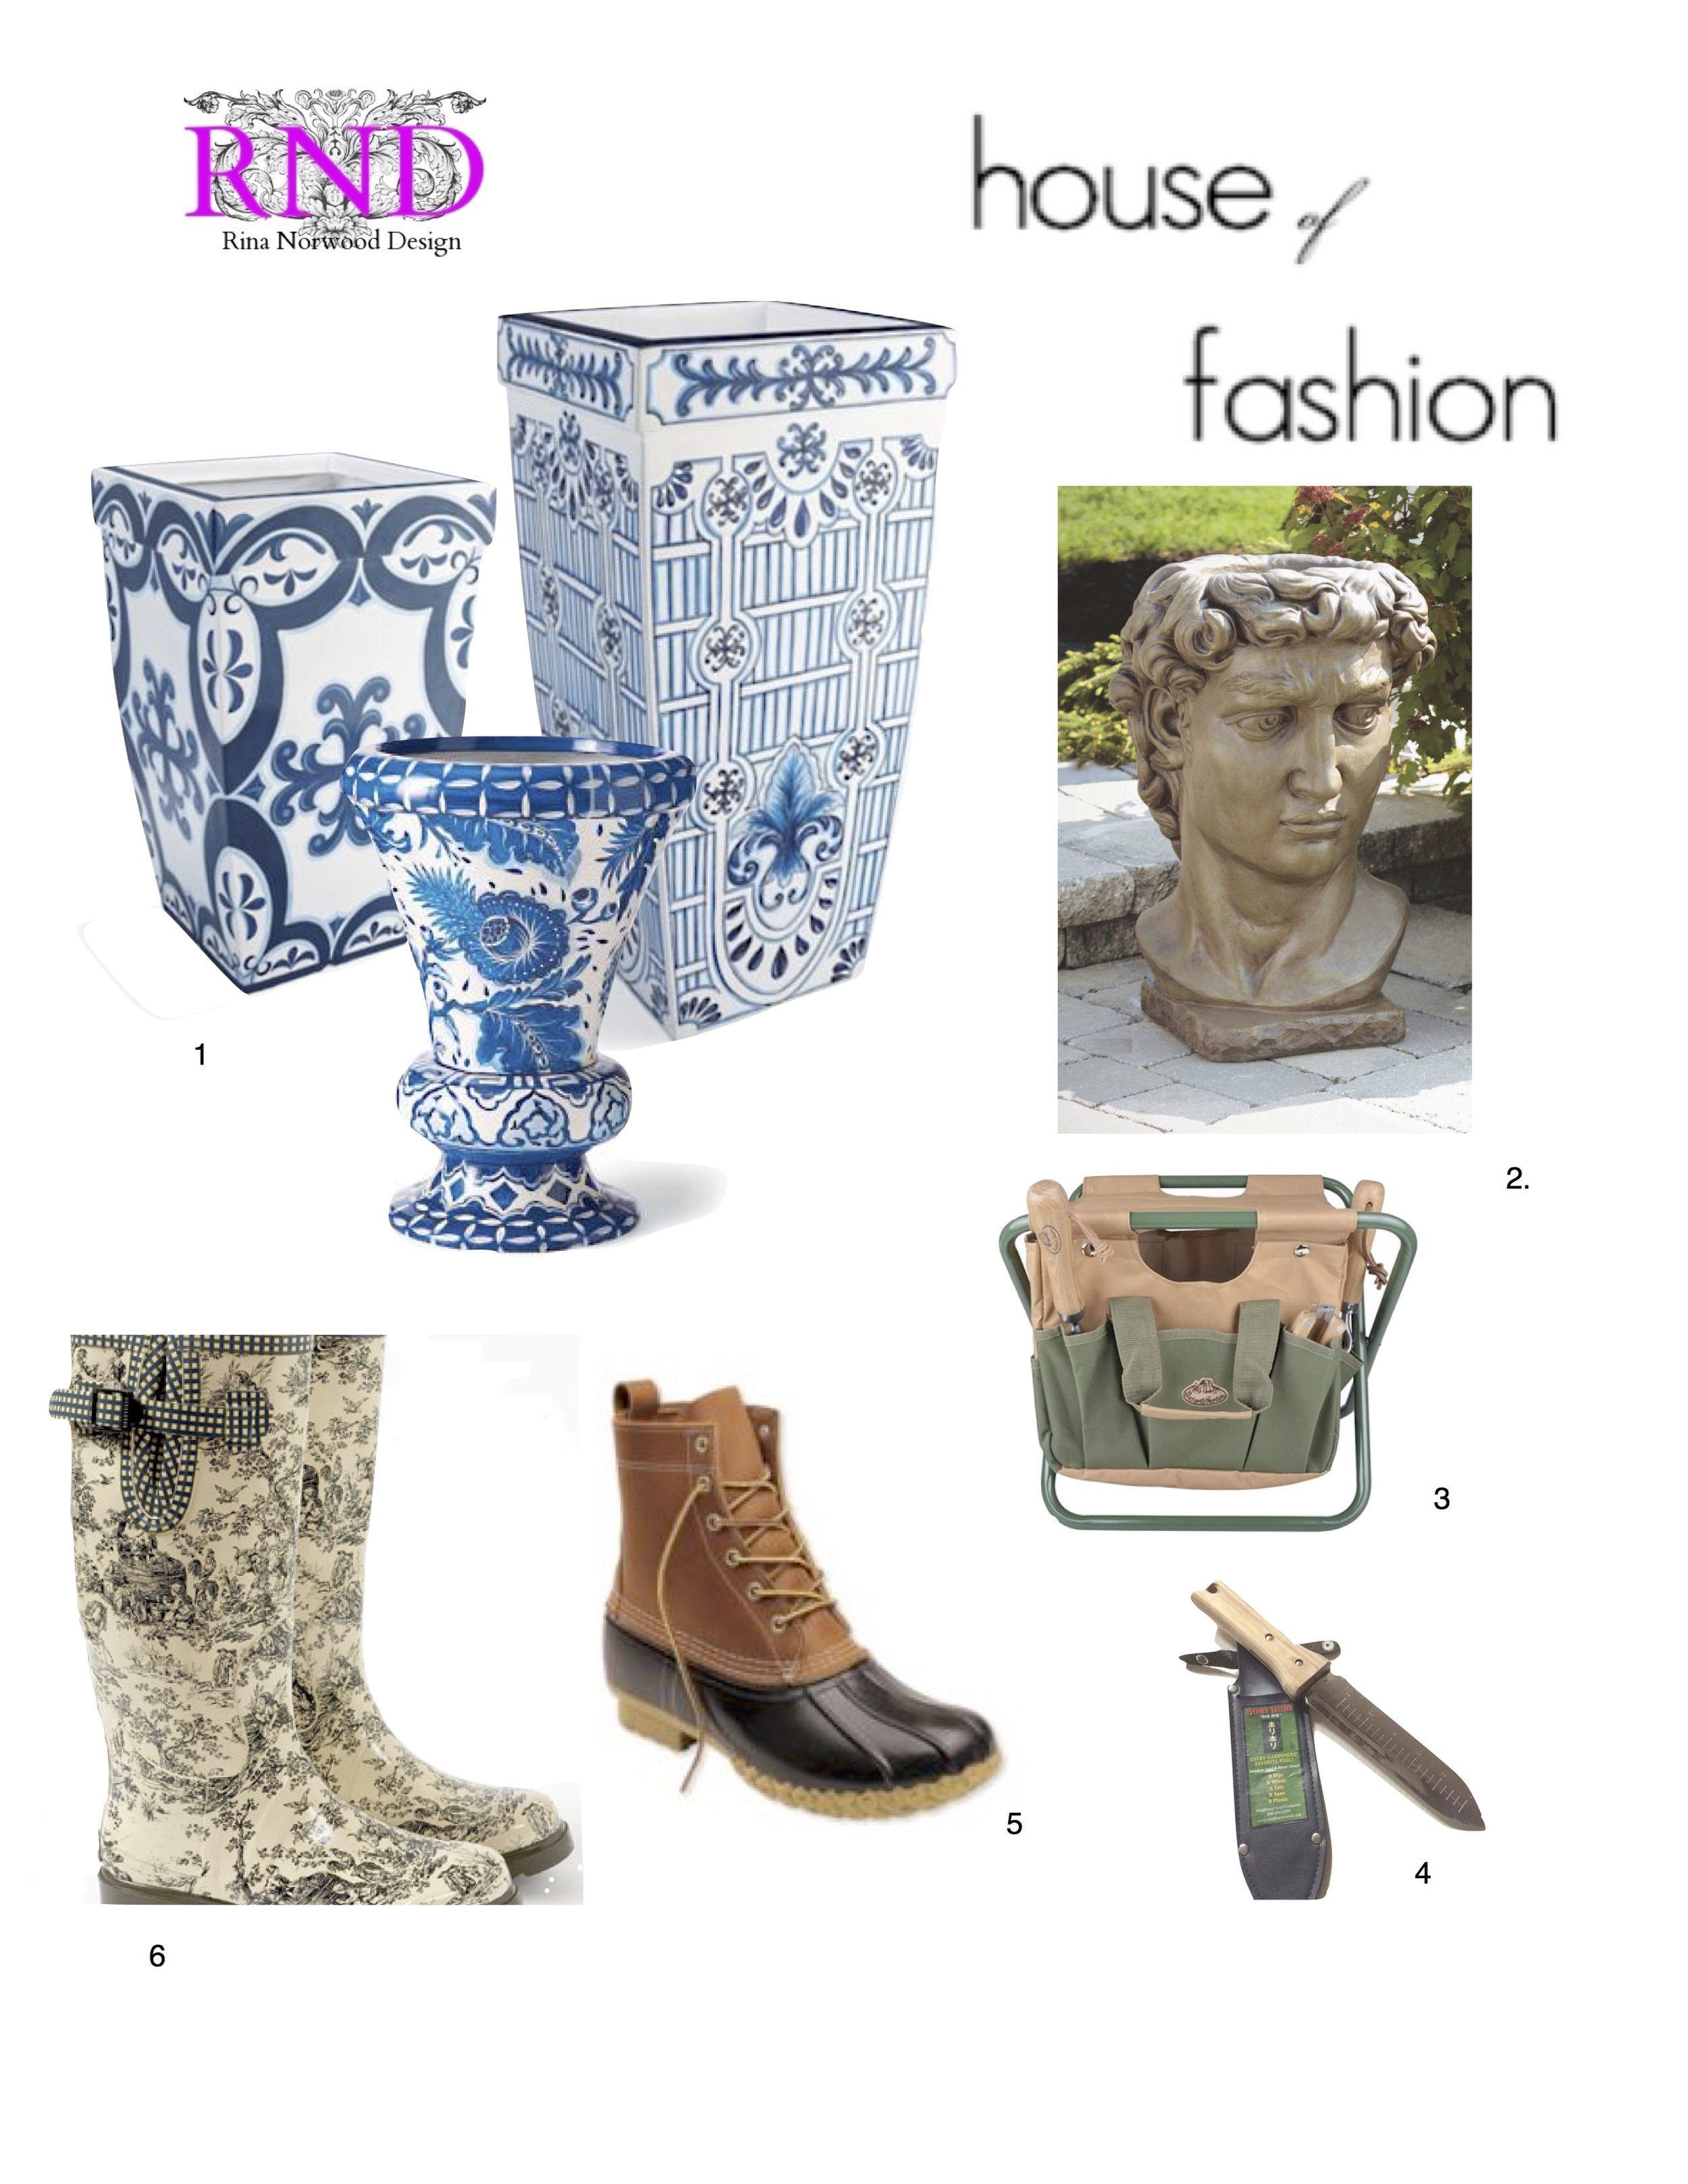 1. Terracotta pots in blue and white 2. David bust planter 3. Gardening stool 4. All in one bulb planter 5. All weather boots 6. Toile rain boots.